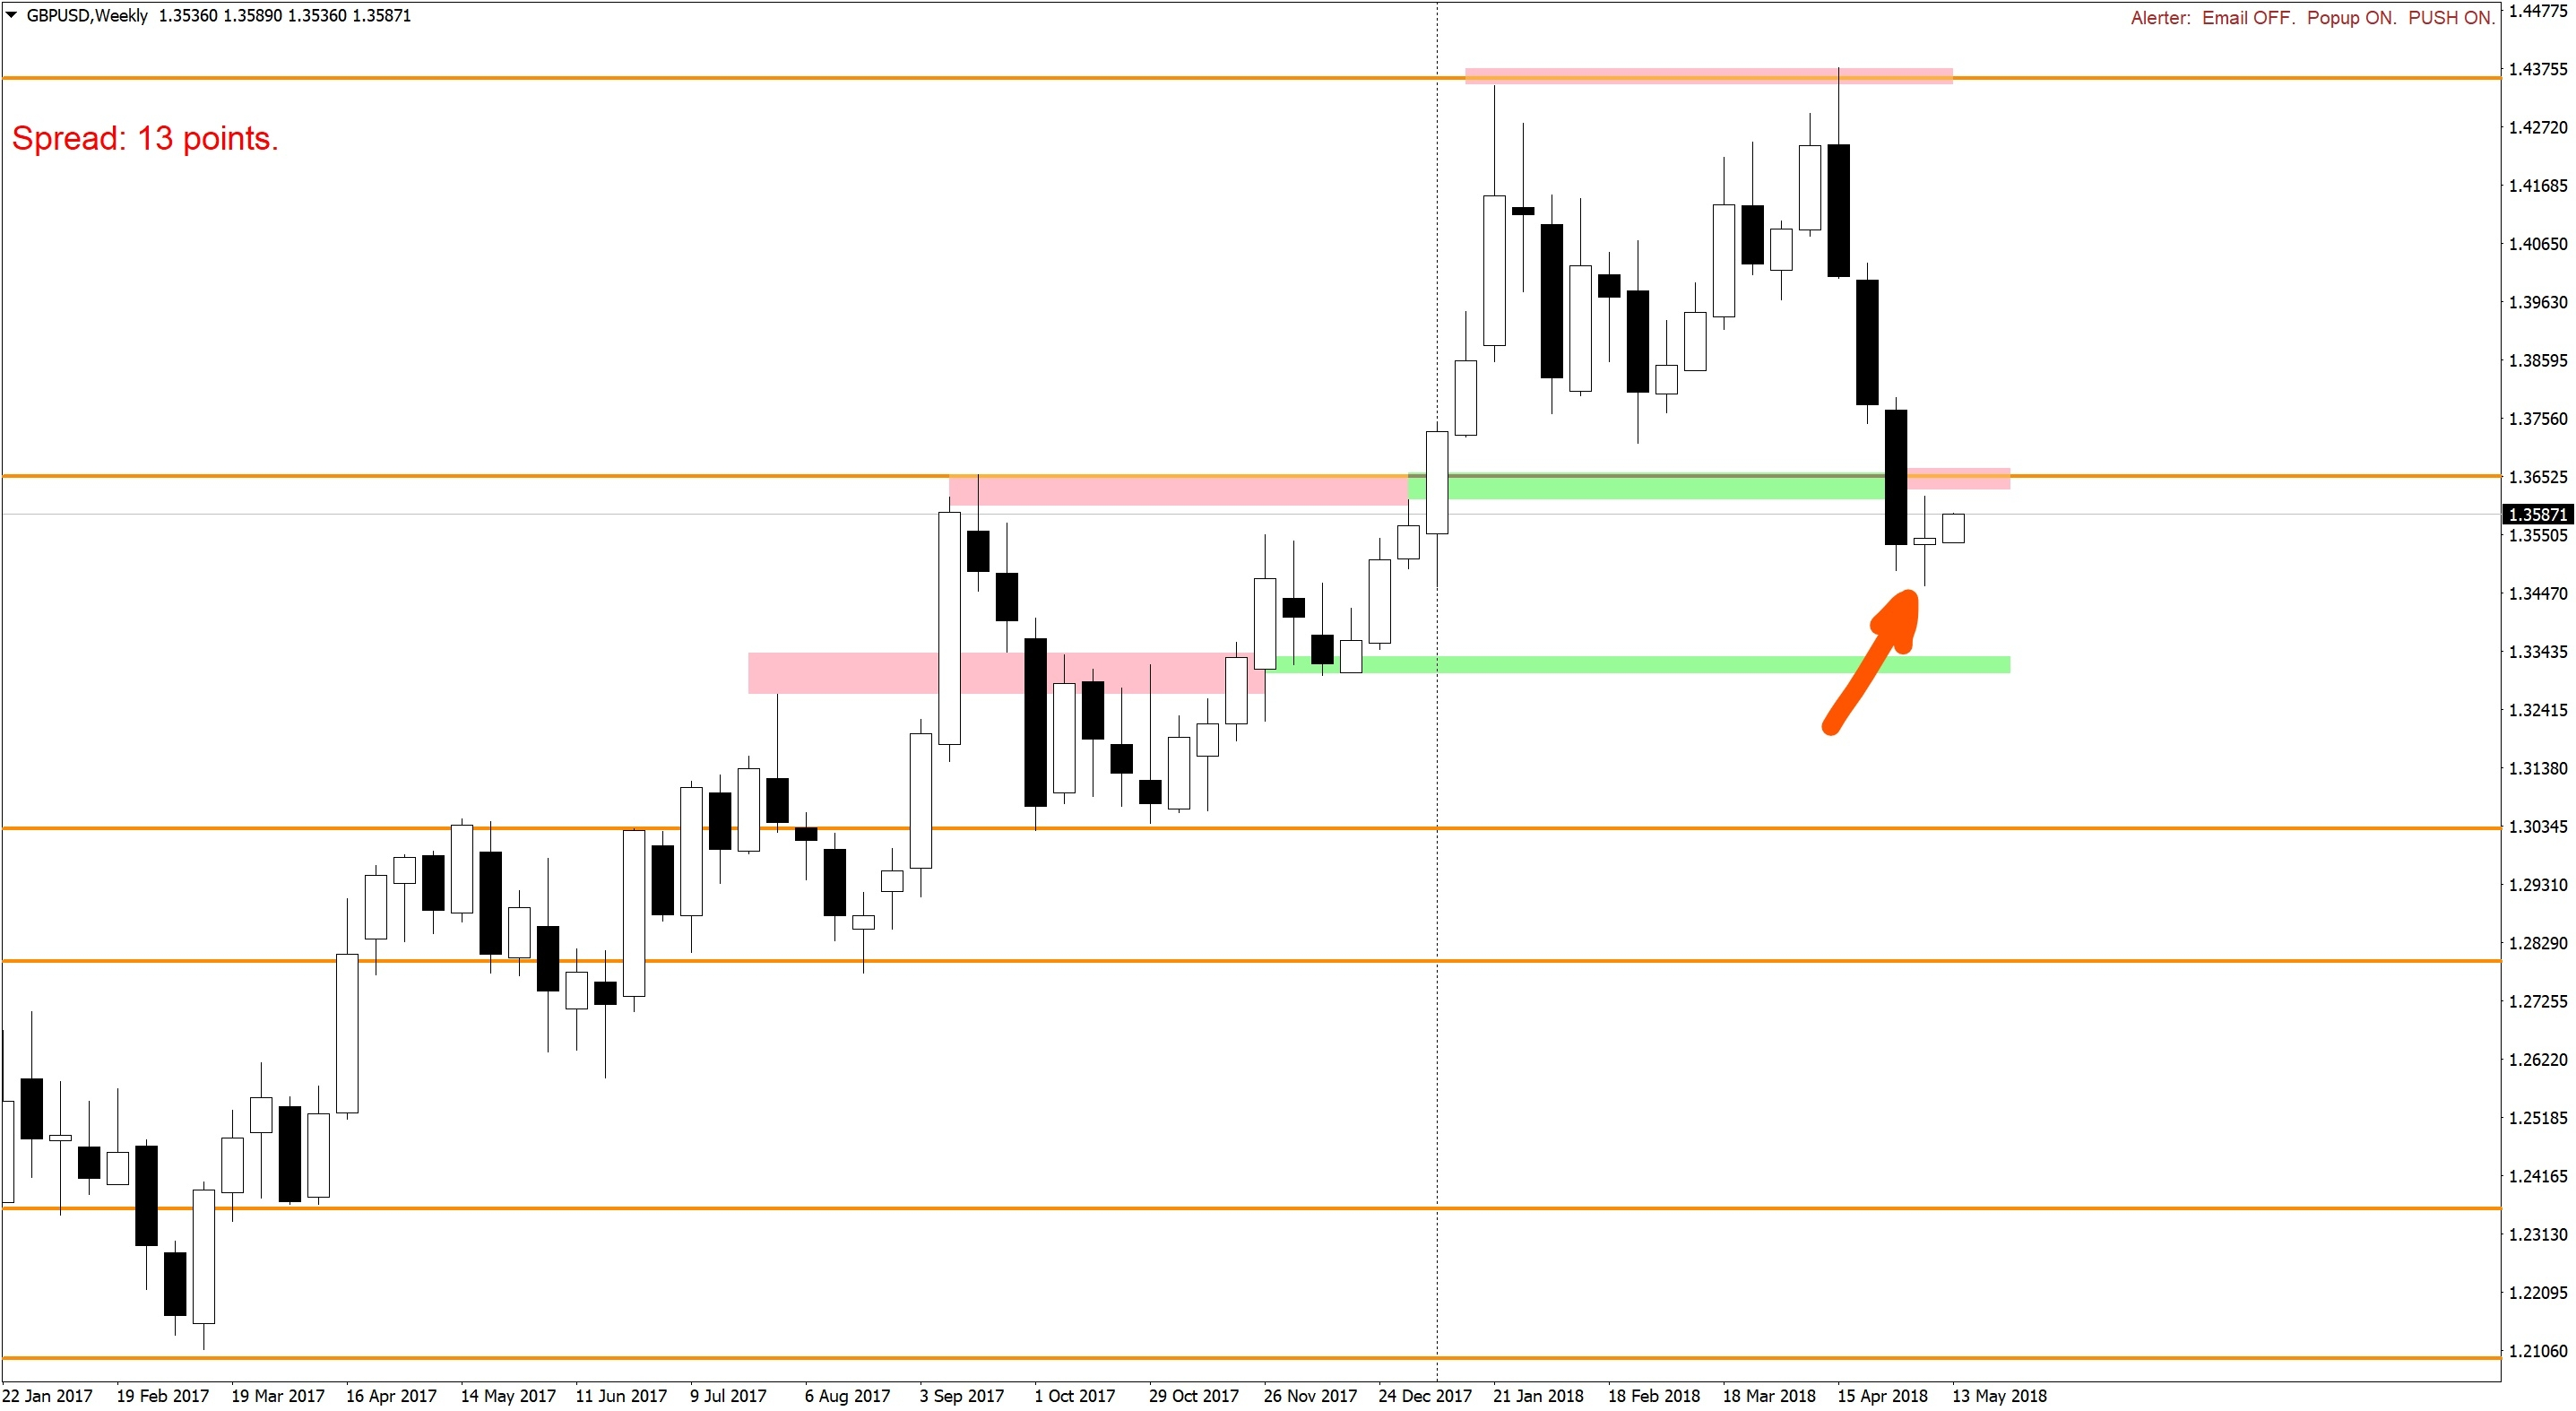 Doji bar on a pair GBPUSD Weekly